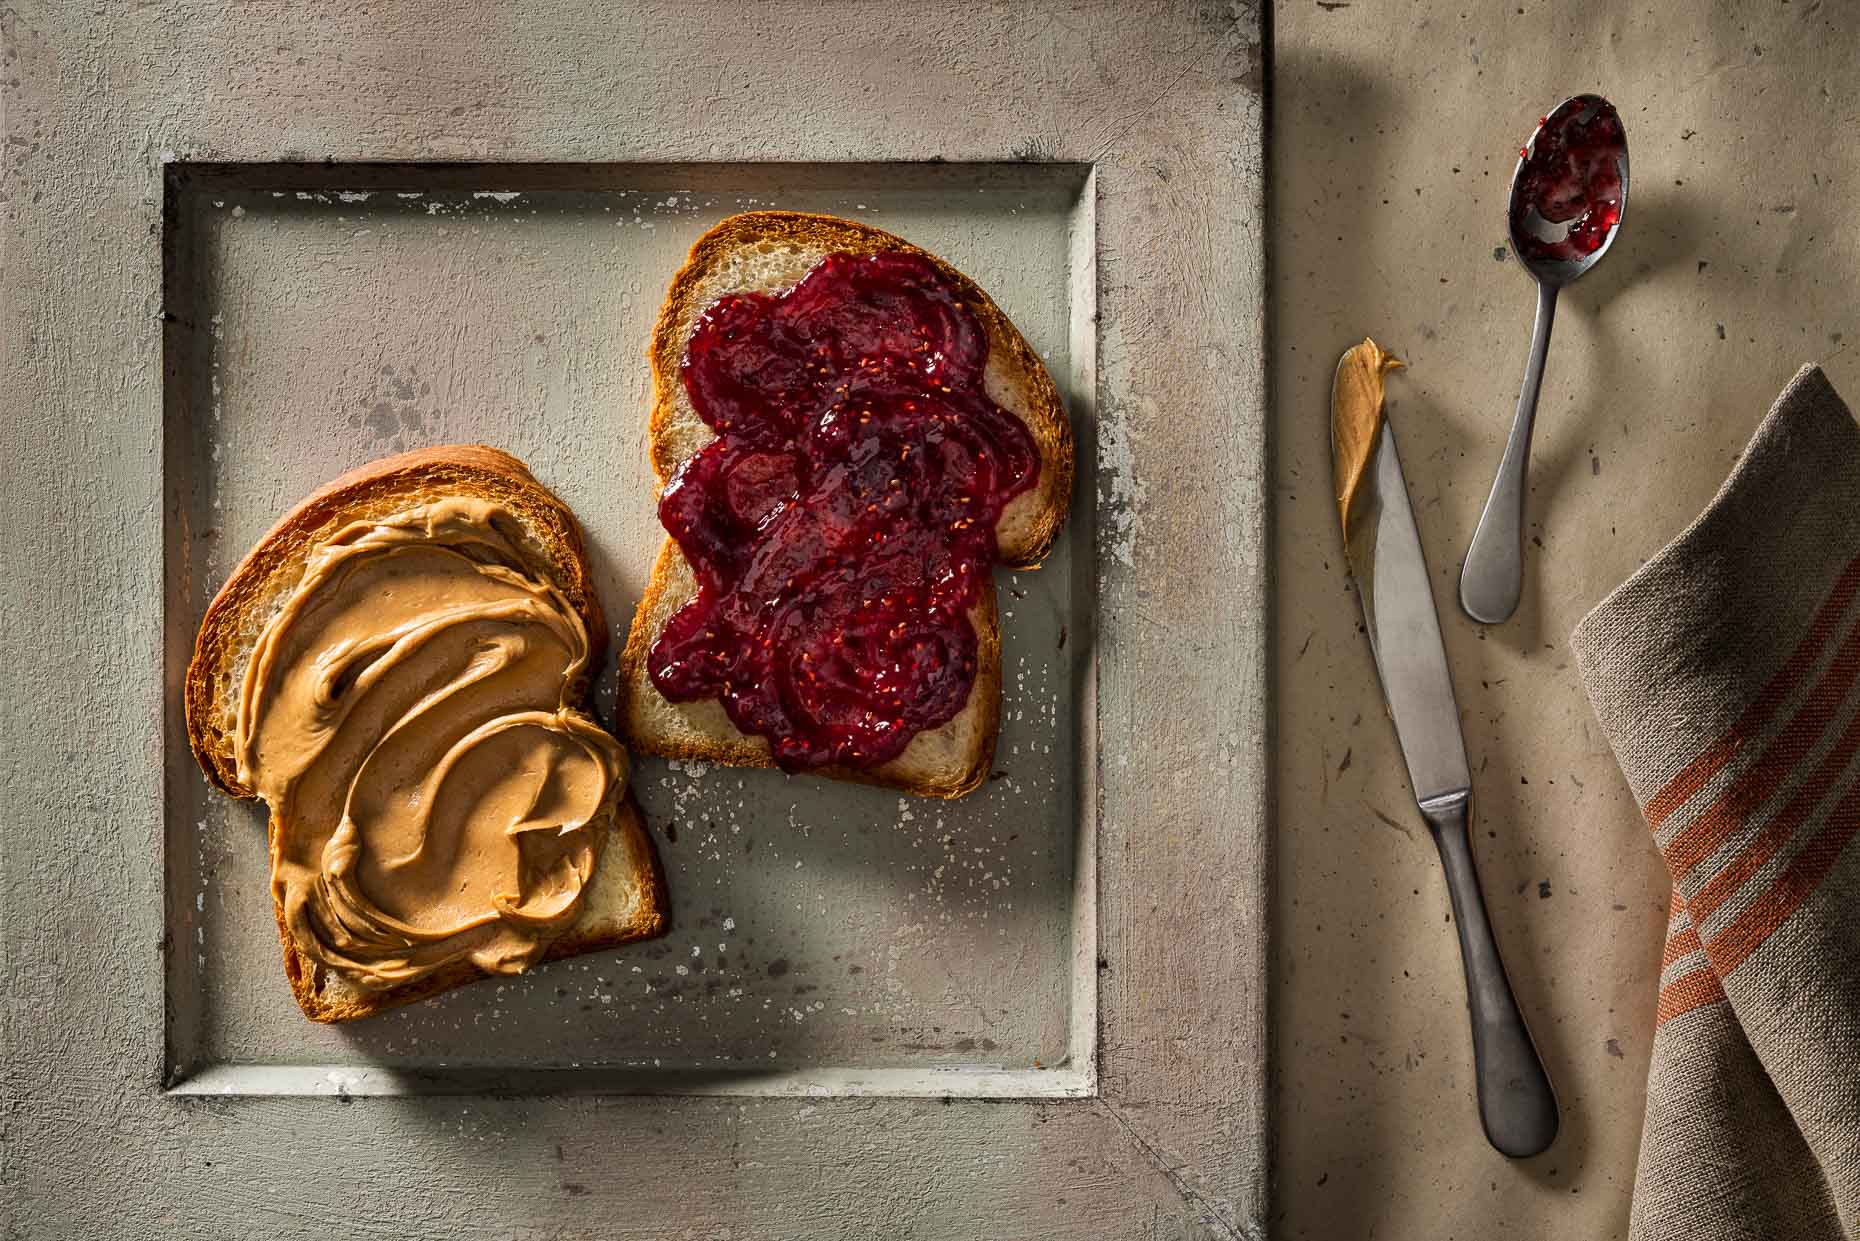 Peanut butter and jelly open sandwich